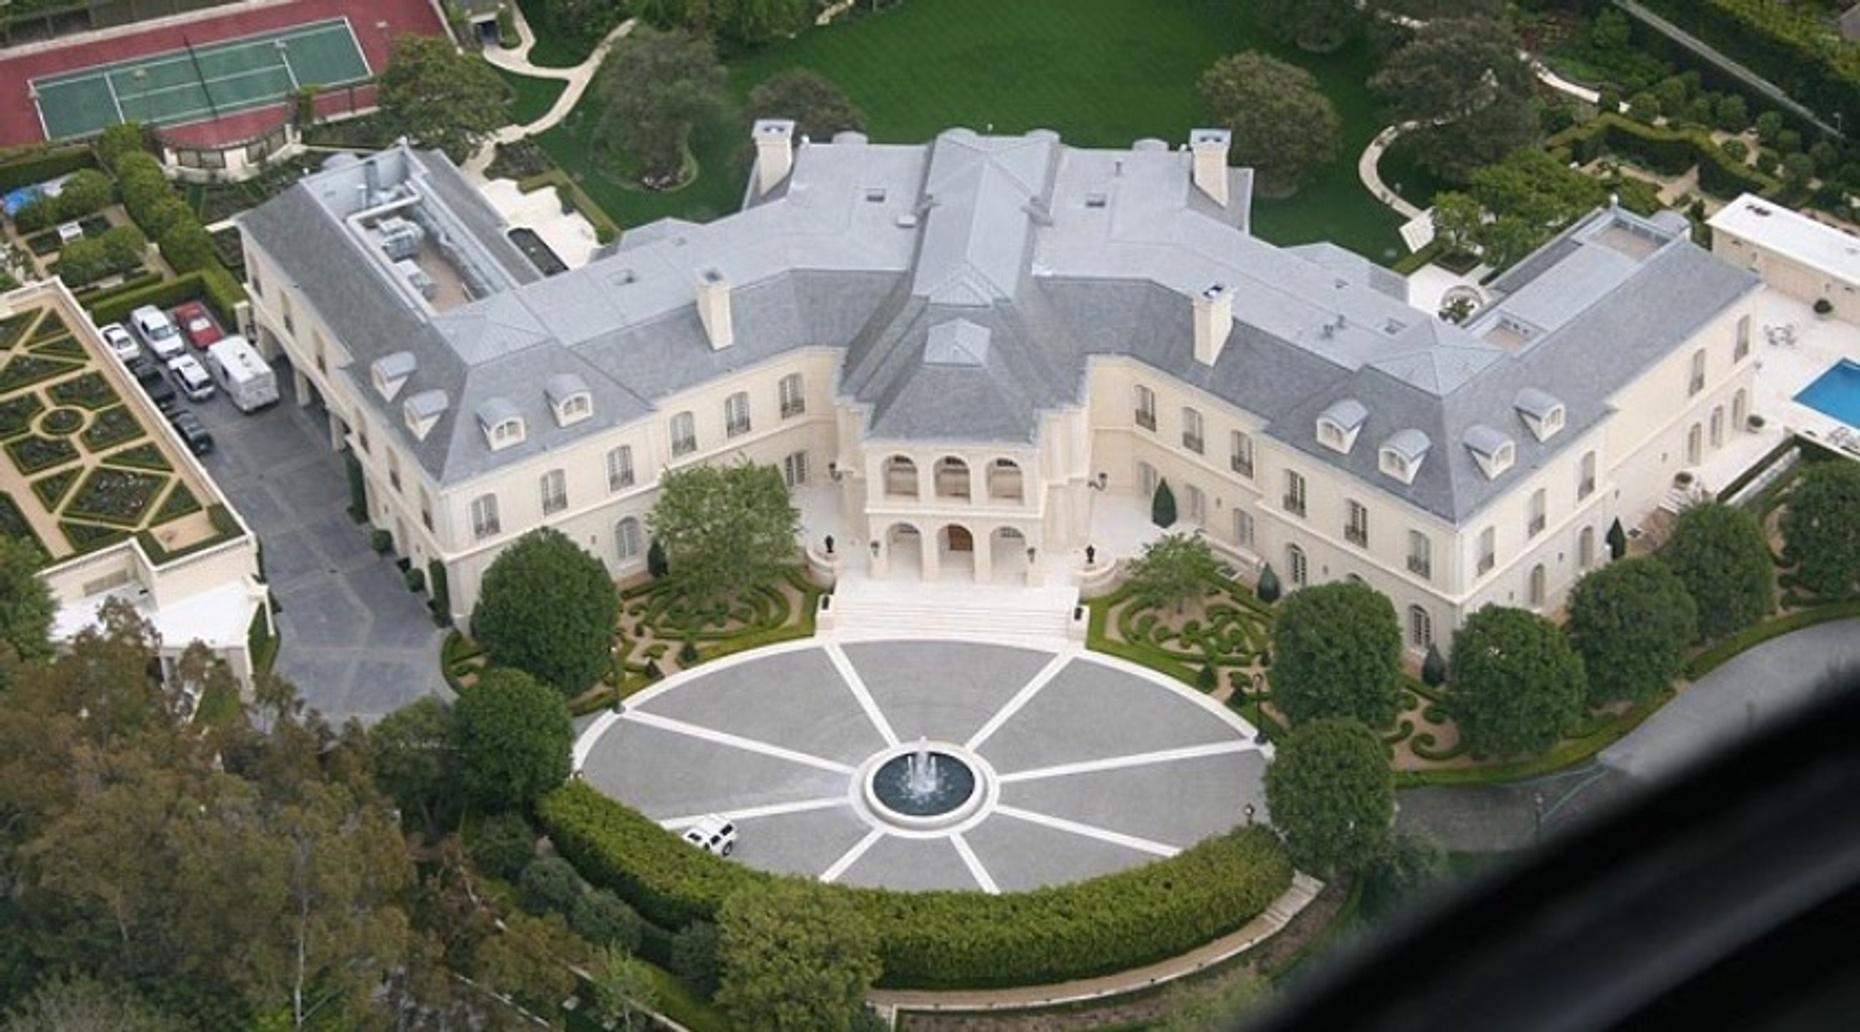 2-Hour Celebrity Homes Tour From Hollywood to Beverly Hills